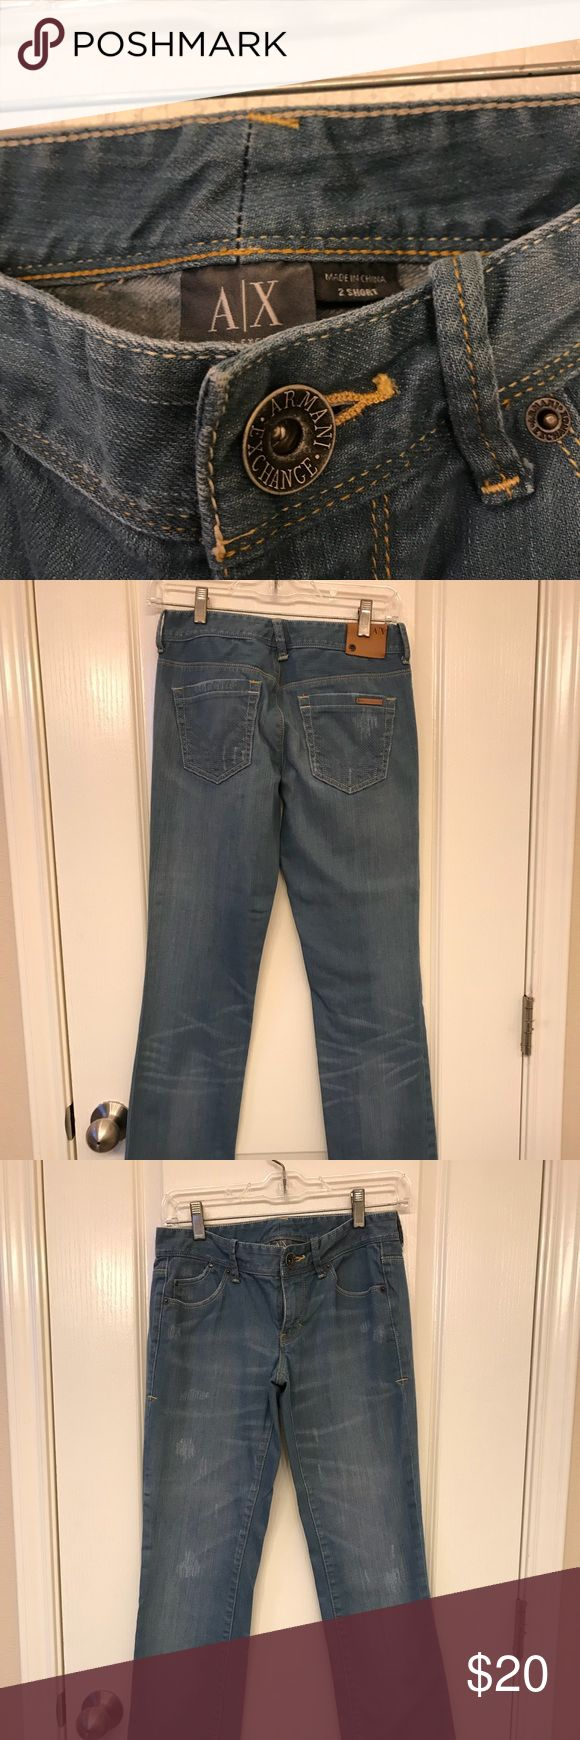 Armani exchange distressed jeans size 2 short In good condition Minimally worn A/X Armani Exchange Jeans Boot Cut